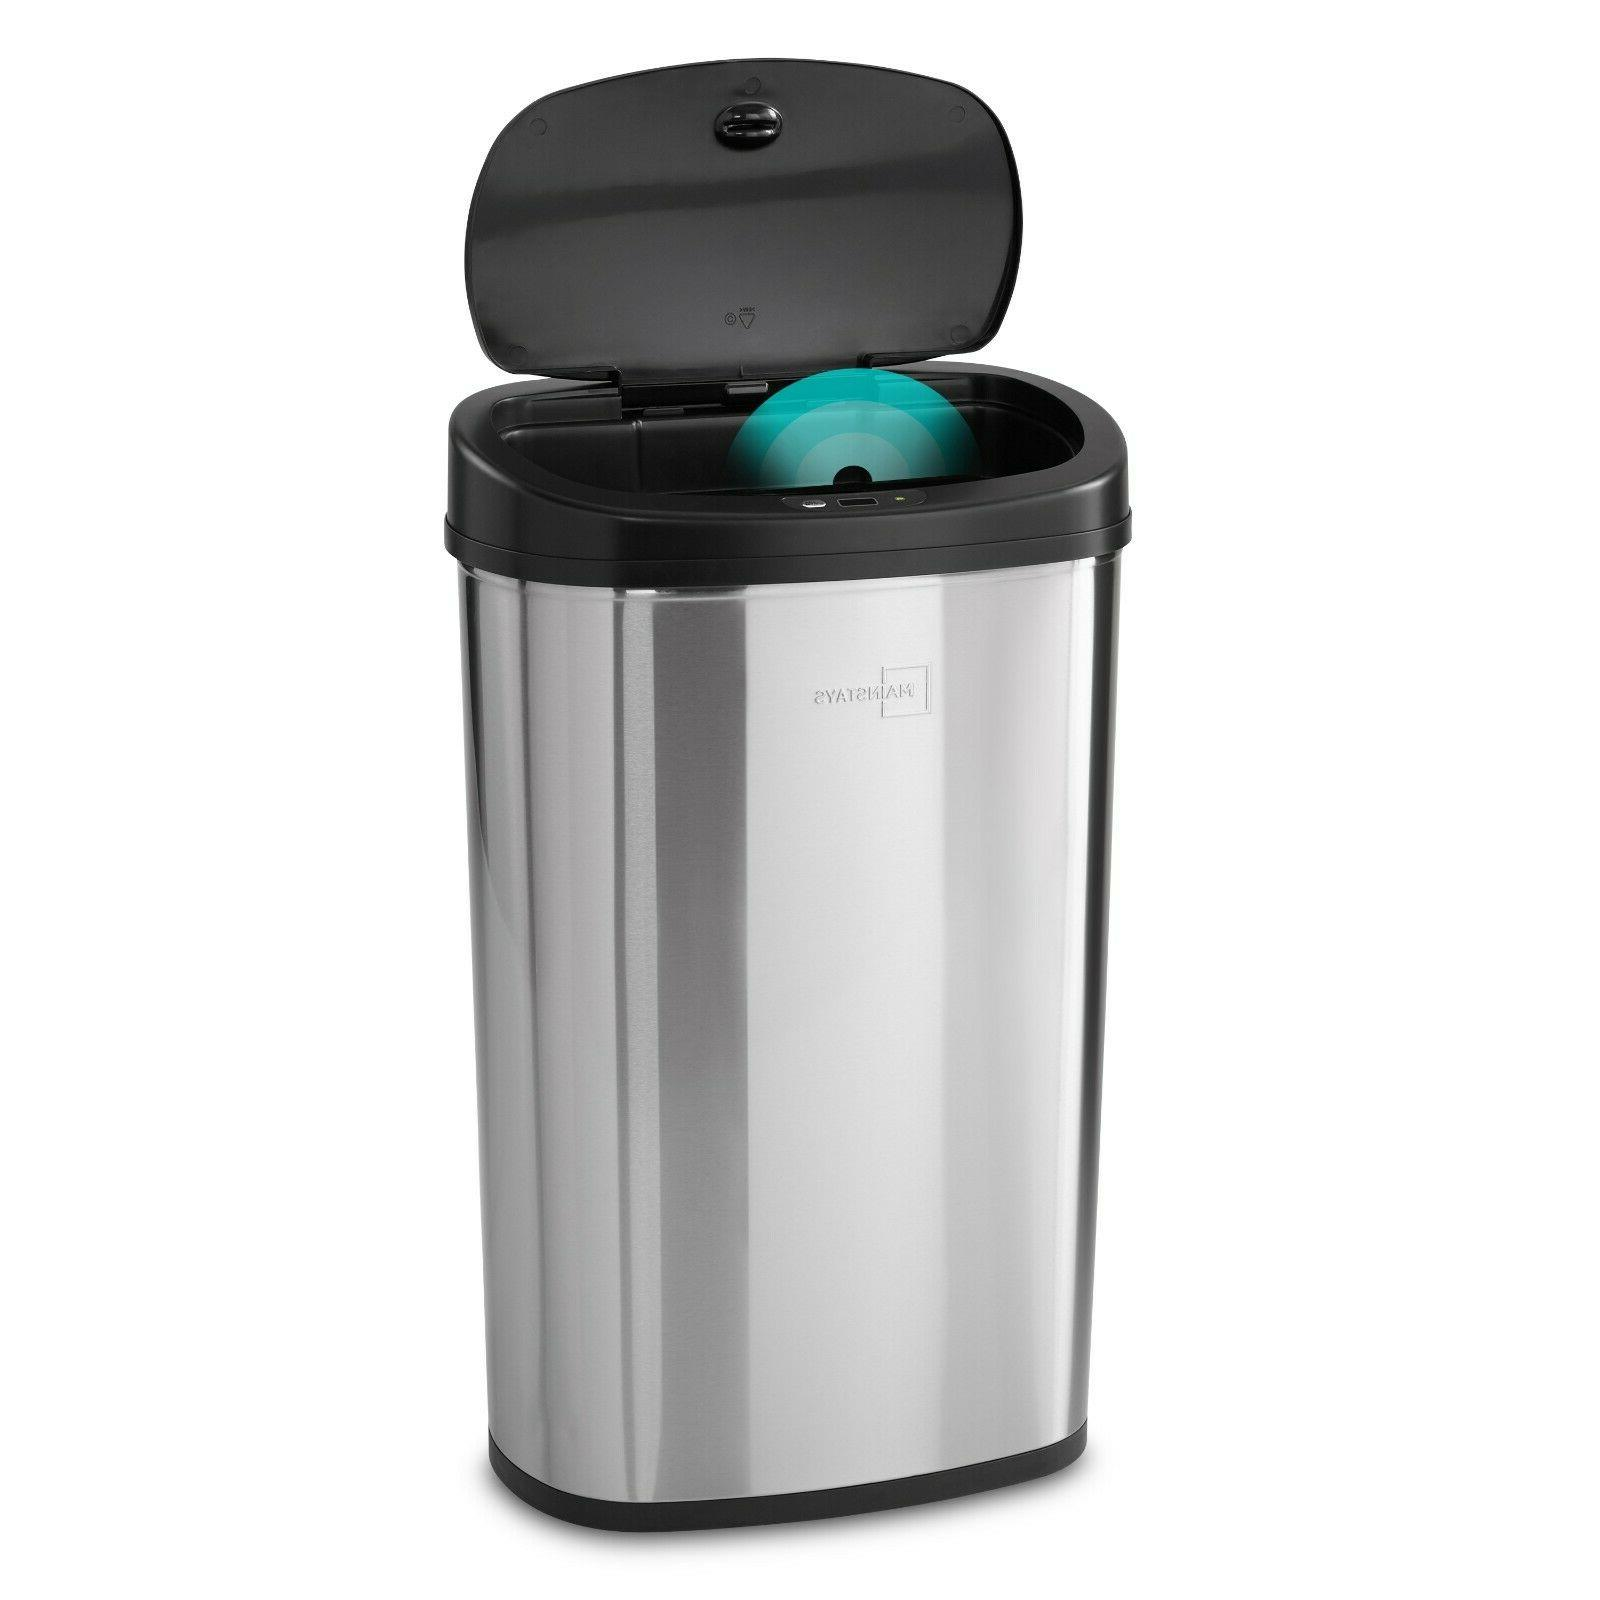 Motion Sensor Trash Can 13 Gallon Garbage Touchless Automati